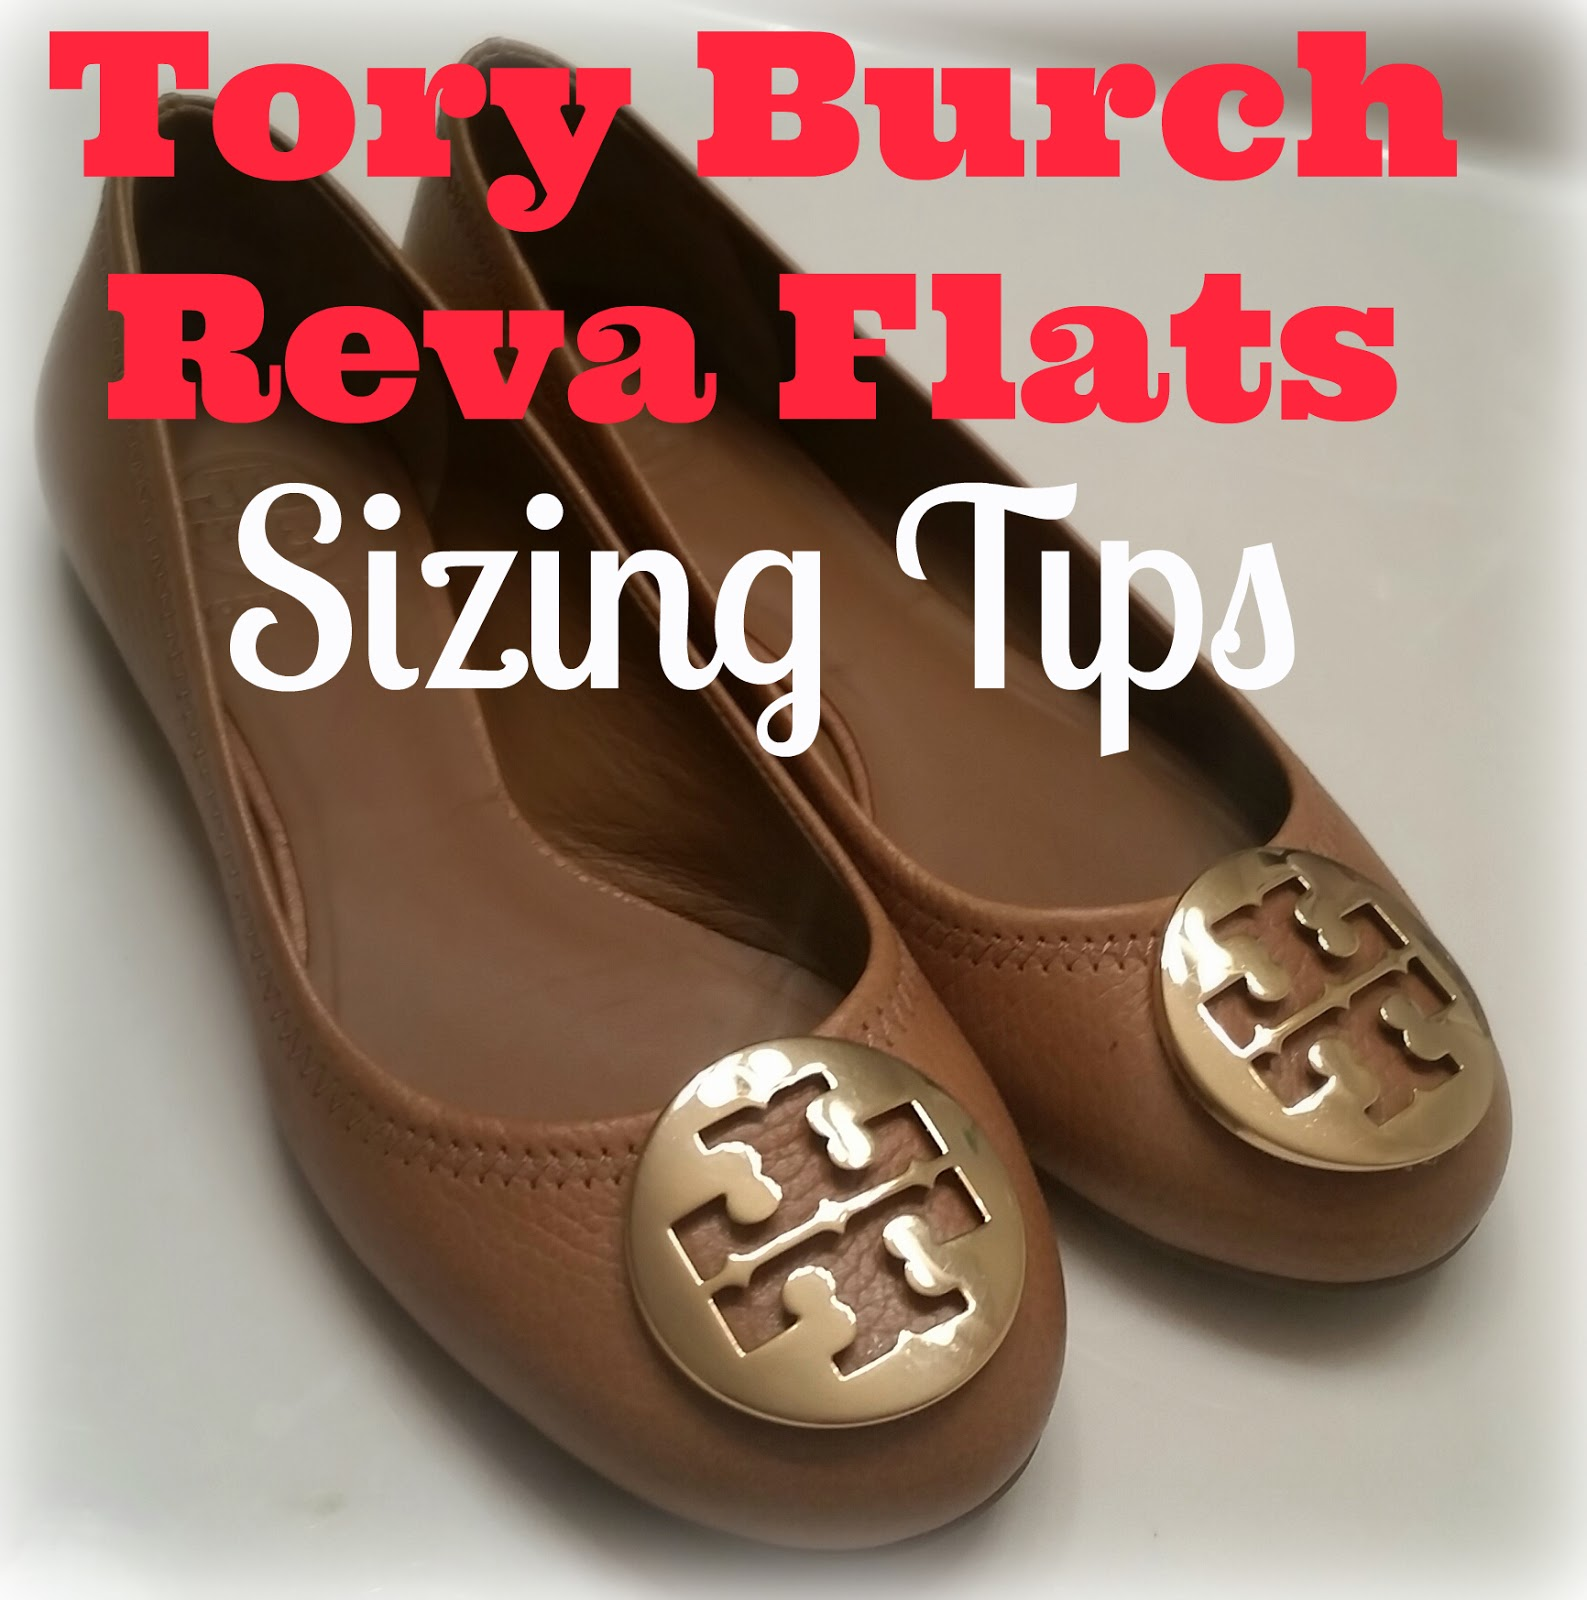 Tory Burch Reva Flats Sizing Tips